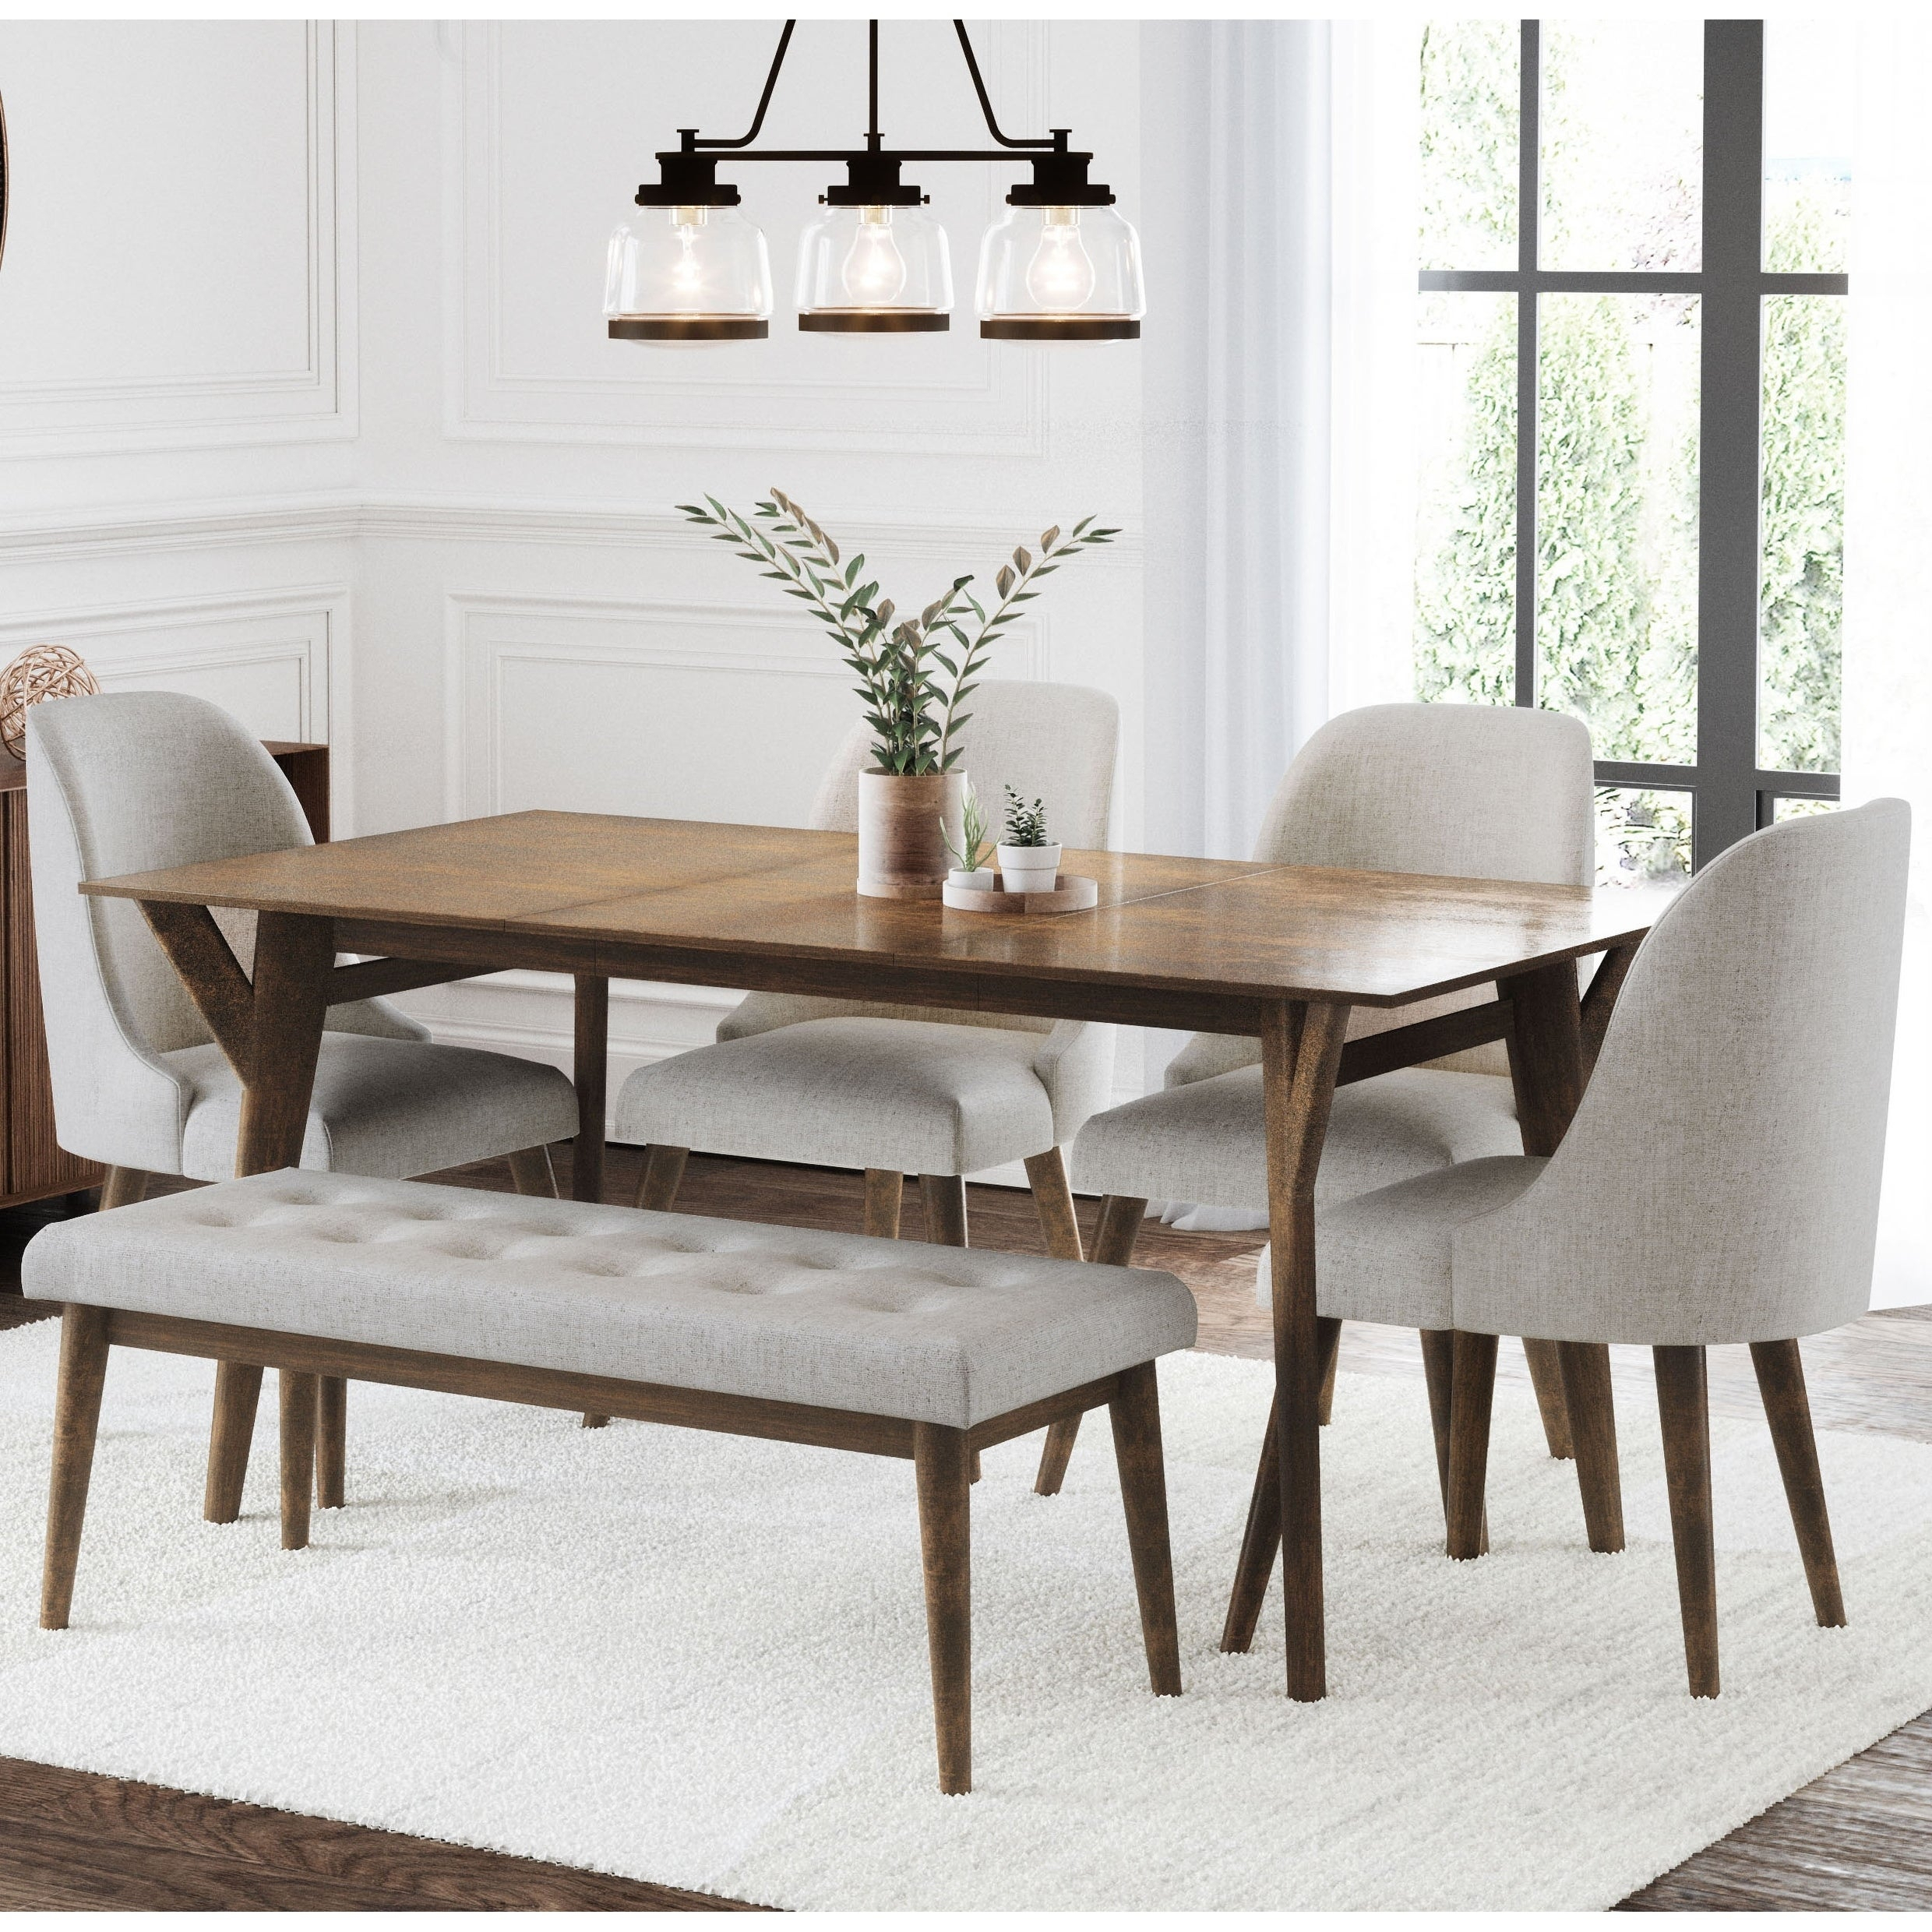 Buy 6 Piece Sets Kitchen & Dining Room Sets Online At Overstock Inside Most Popular Osterman 6 Piece Extendable Dining Sets (Set Of 6) (Image 3 of 20)